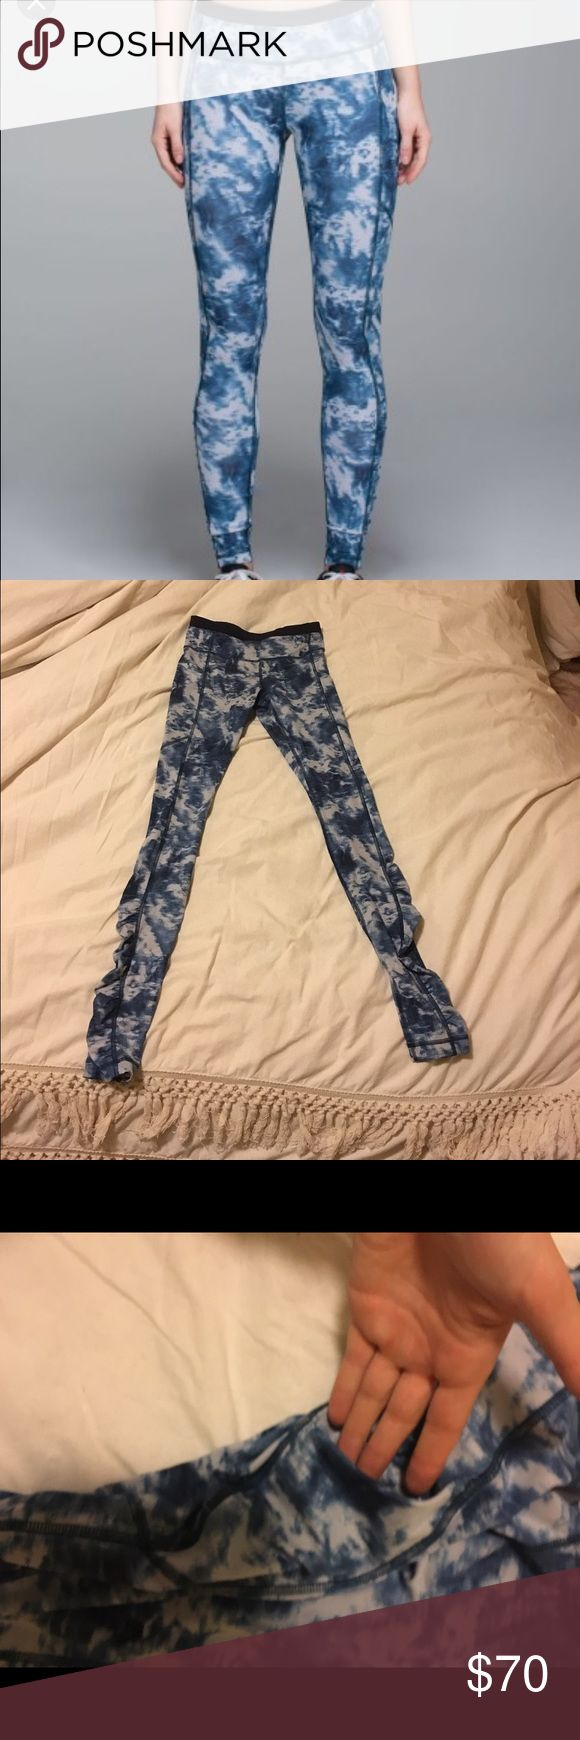 Lululemon blue tie dye leggings Great pants. Worn once, just a little too small. Tags removed. Has 2 hidden pockets (1 back 1 front) for keys in addition to 2 side pockets. Scrunch detail at ankles. Another pair of great lululemin exercise pants! lululemon athletica Pants Leggings